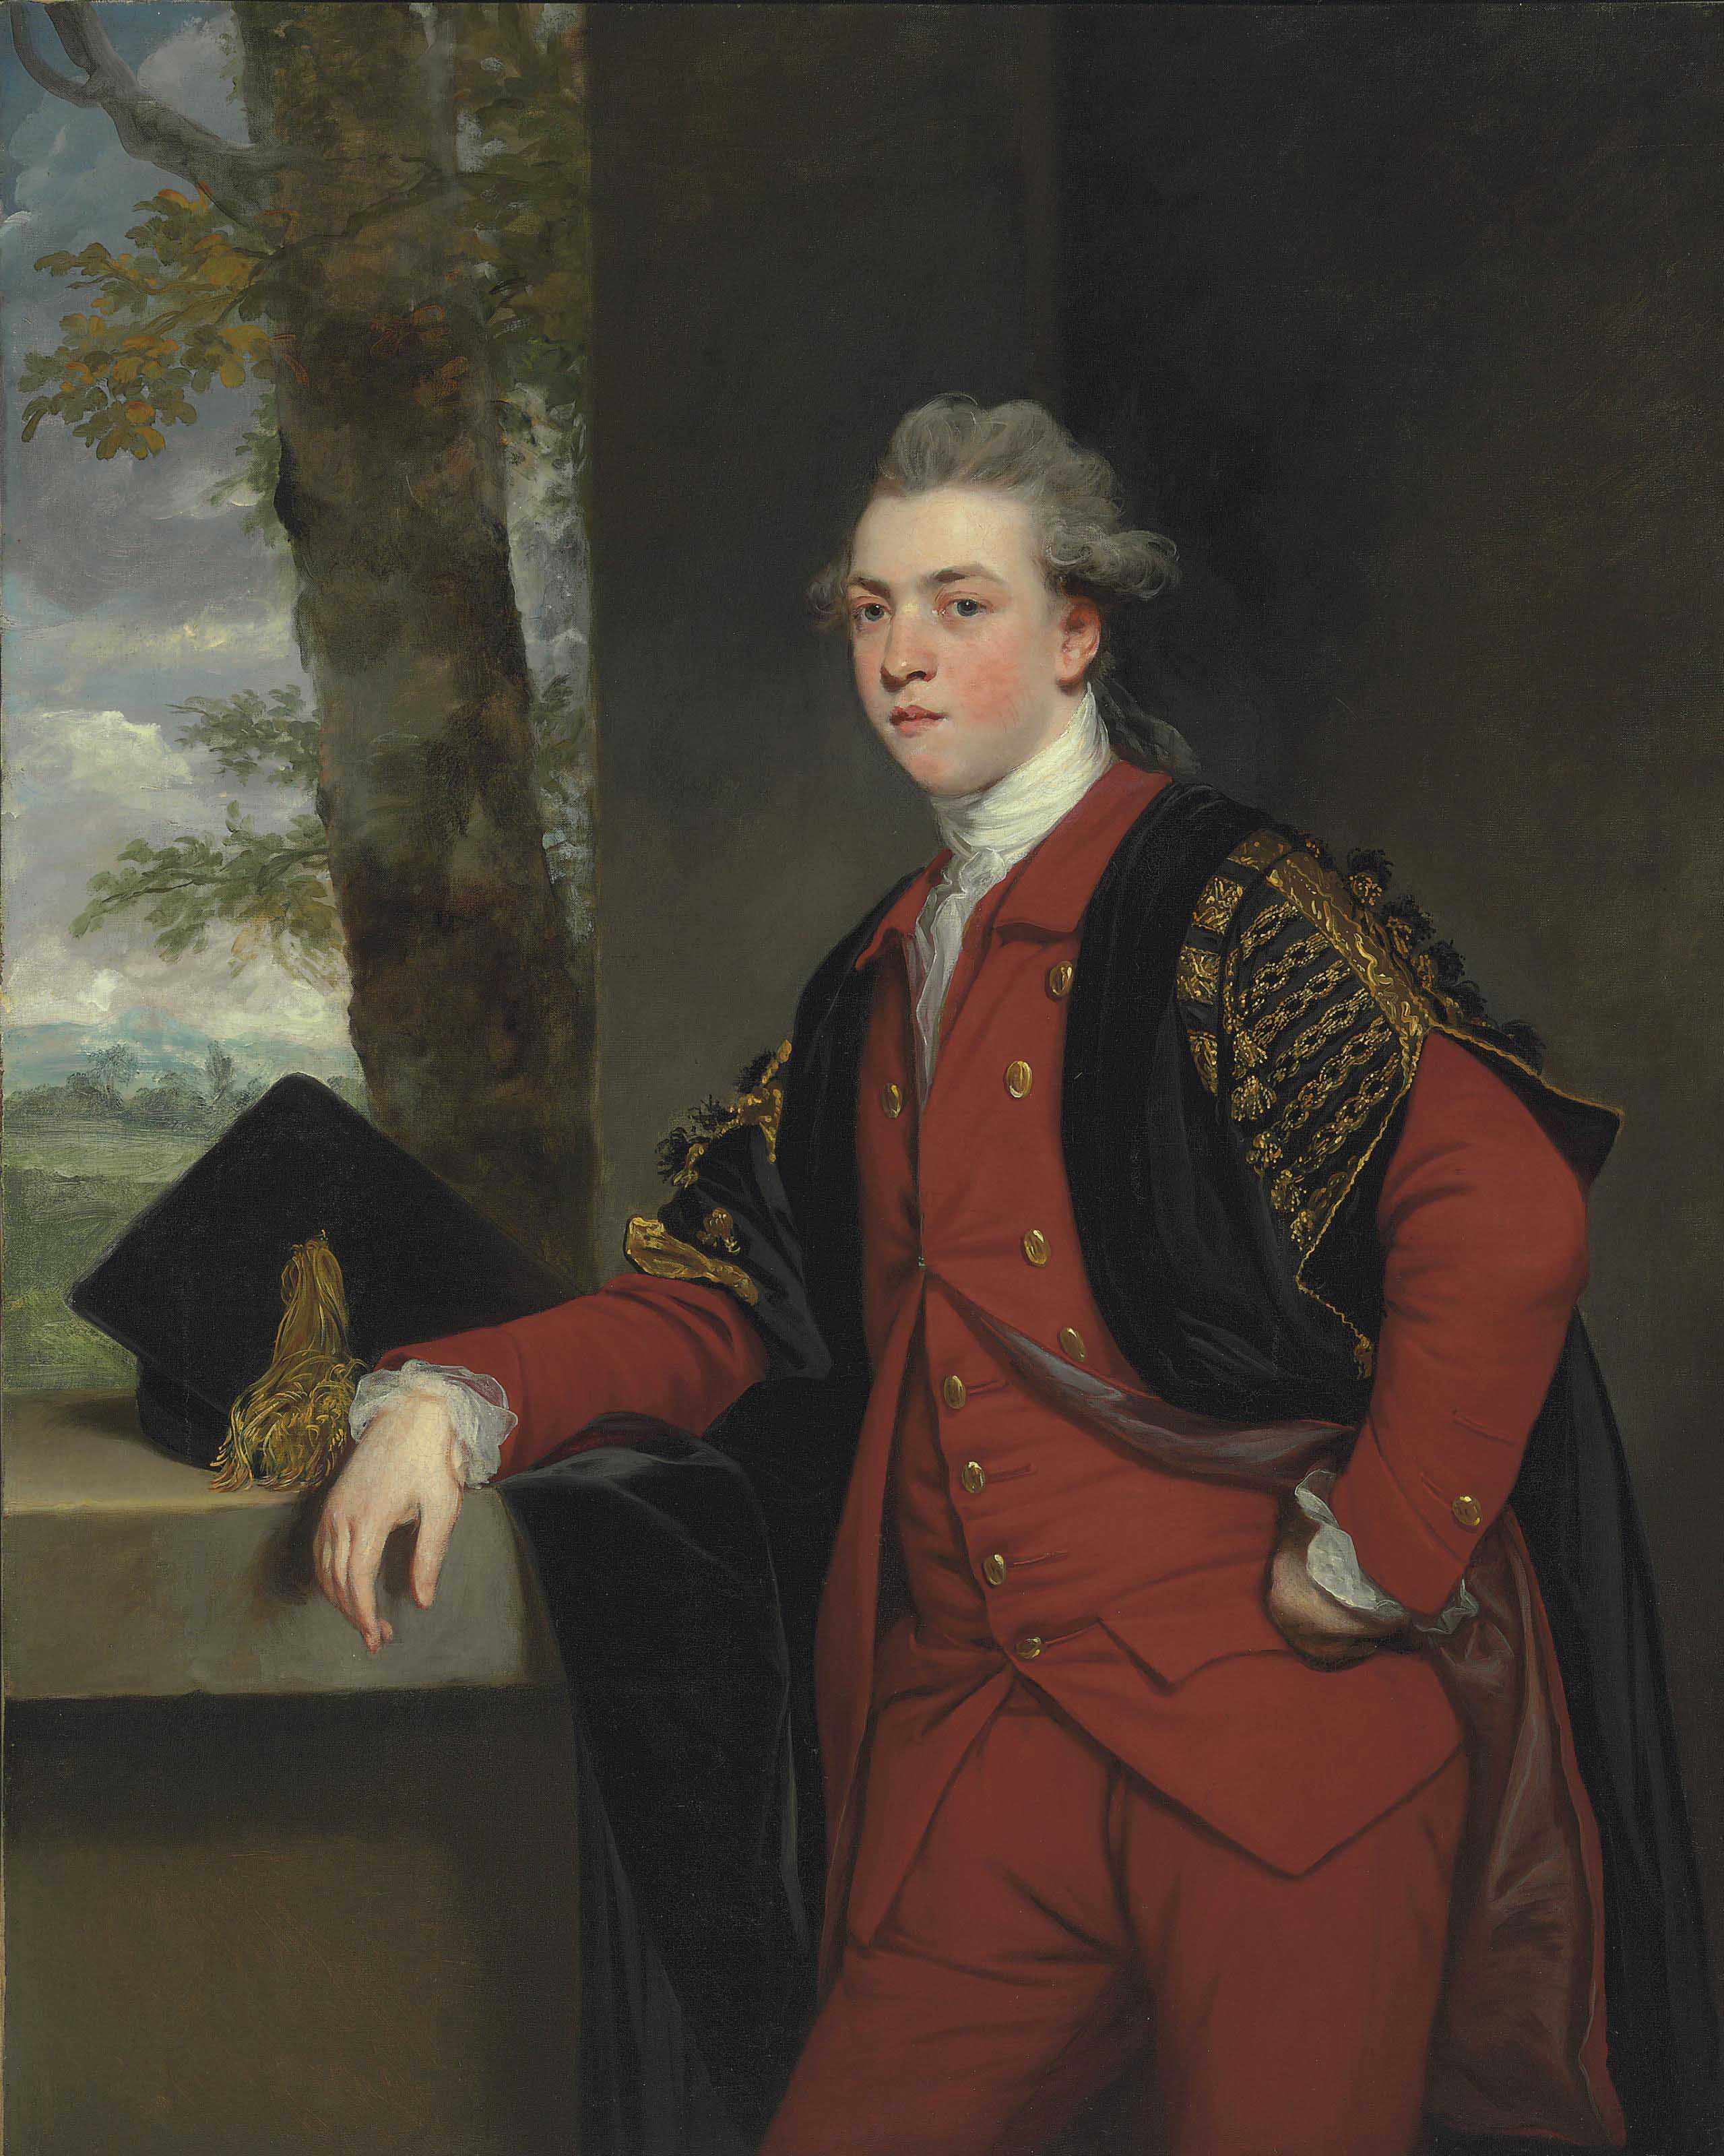 Portrait of Francis Basset, later 1st Baron de Dunstanville and Basset (1757-1835), standing three-quarter-length, in a red suit and undergraduate robes, a mortar-board on the wall beside him